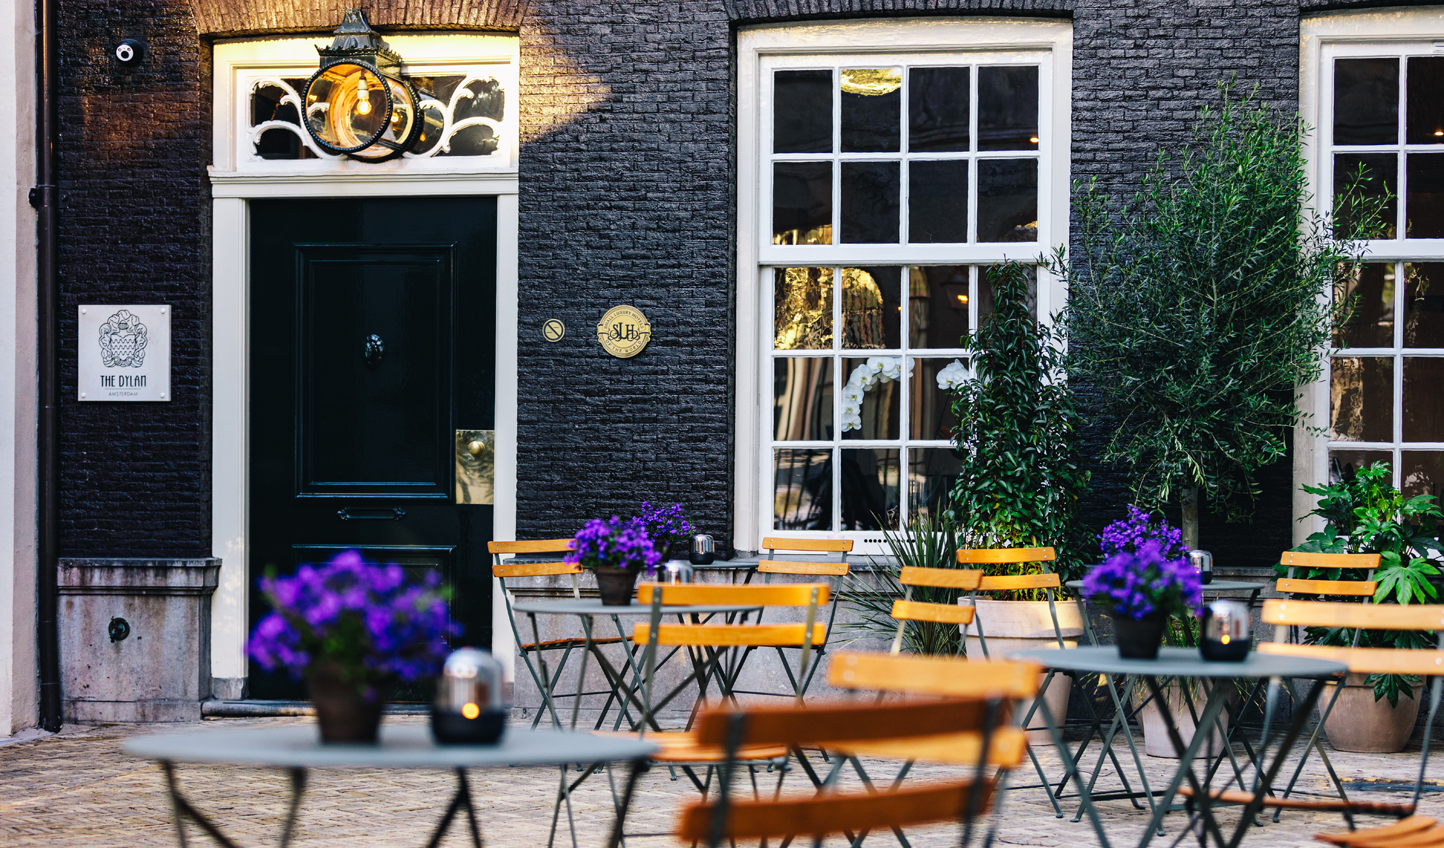 An urban oasis in the heart of Amsterdam